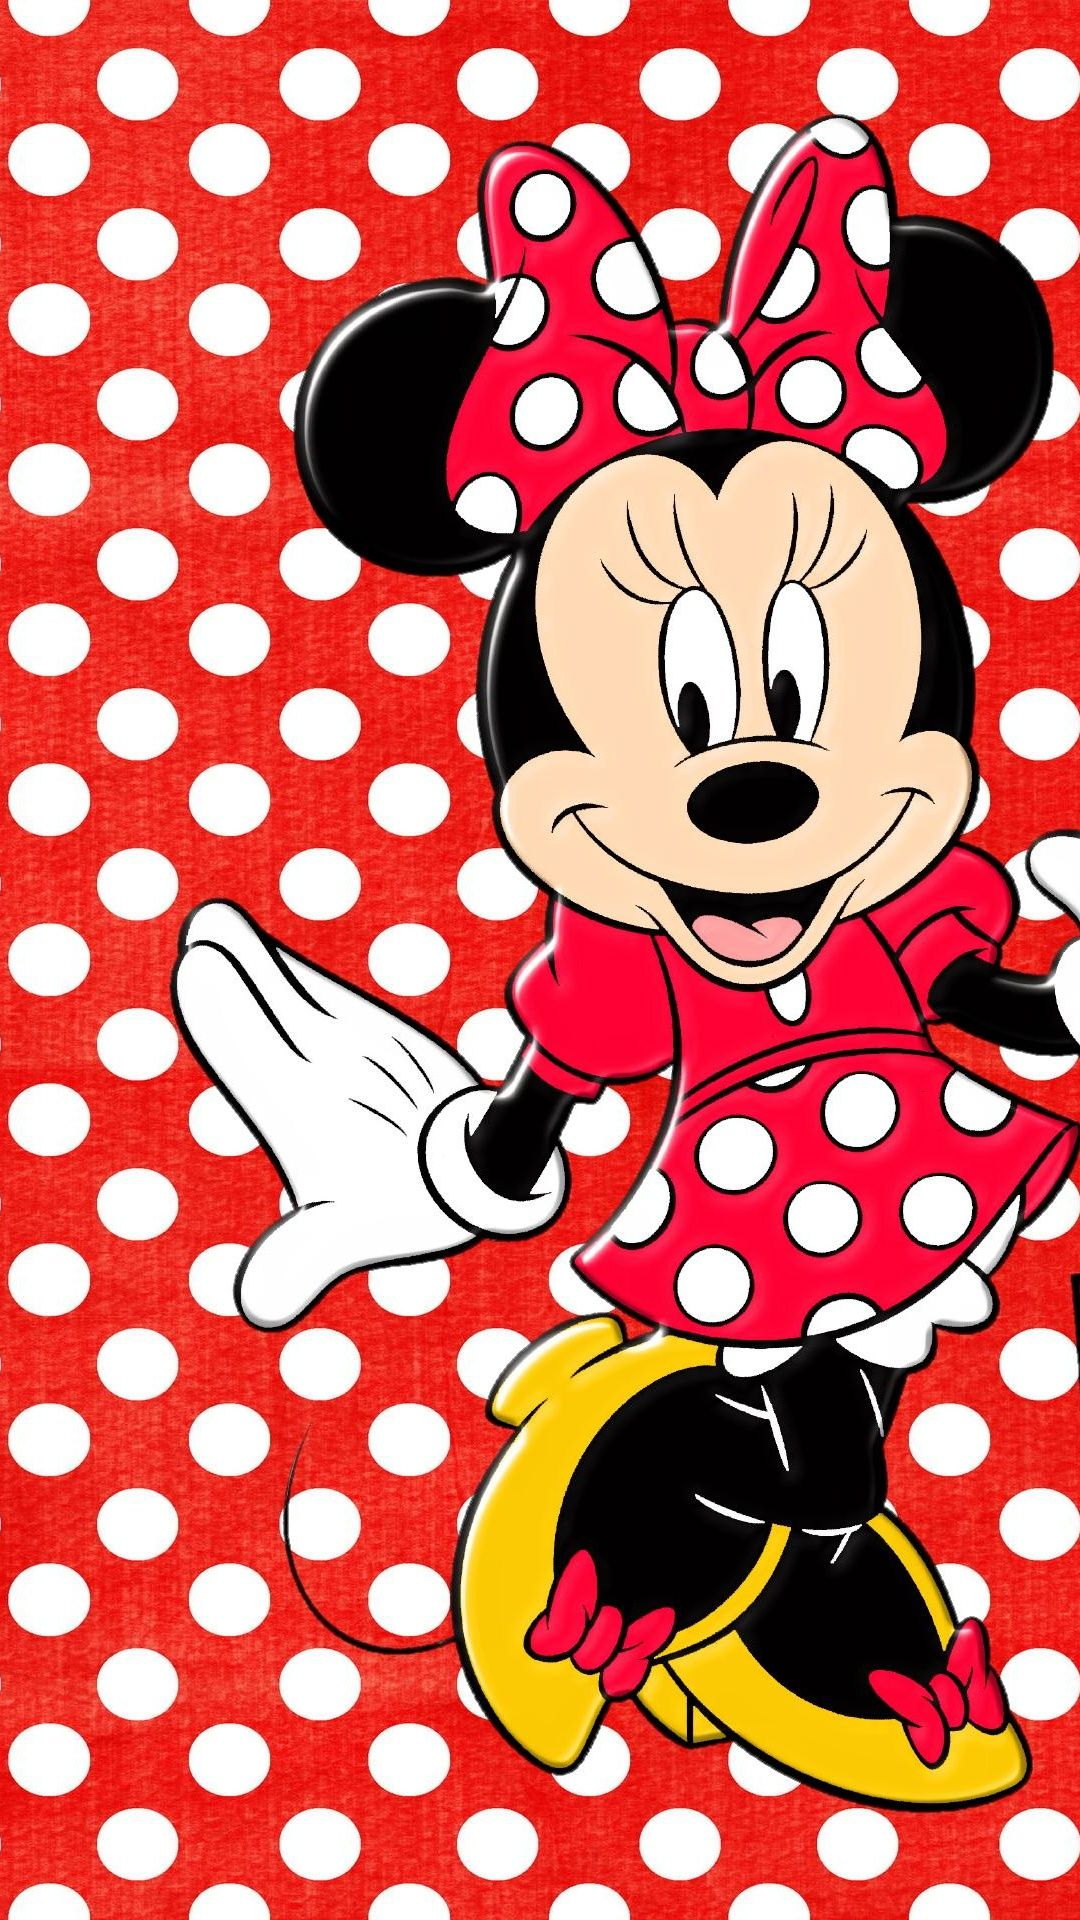 minnie mouse Tap to see more cute cartoon wallpapers